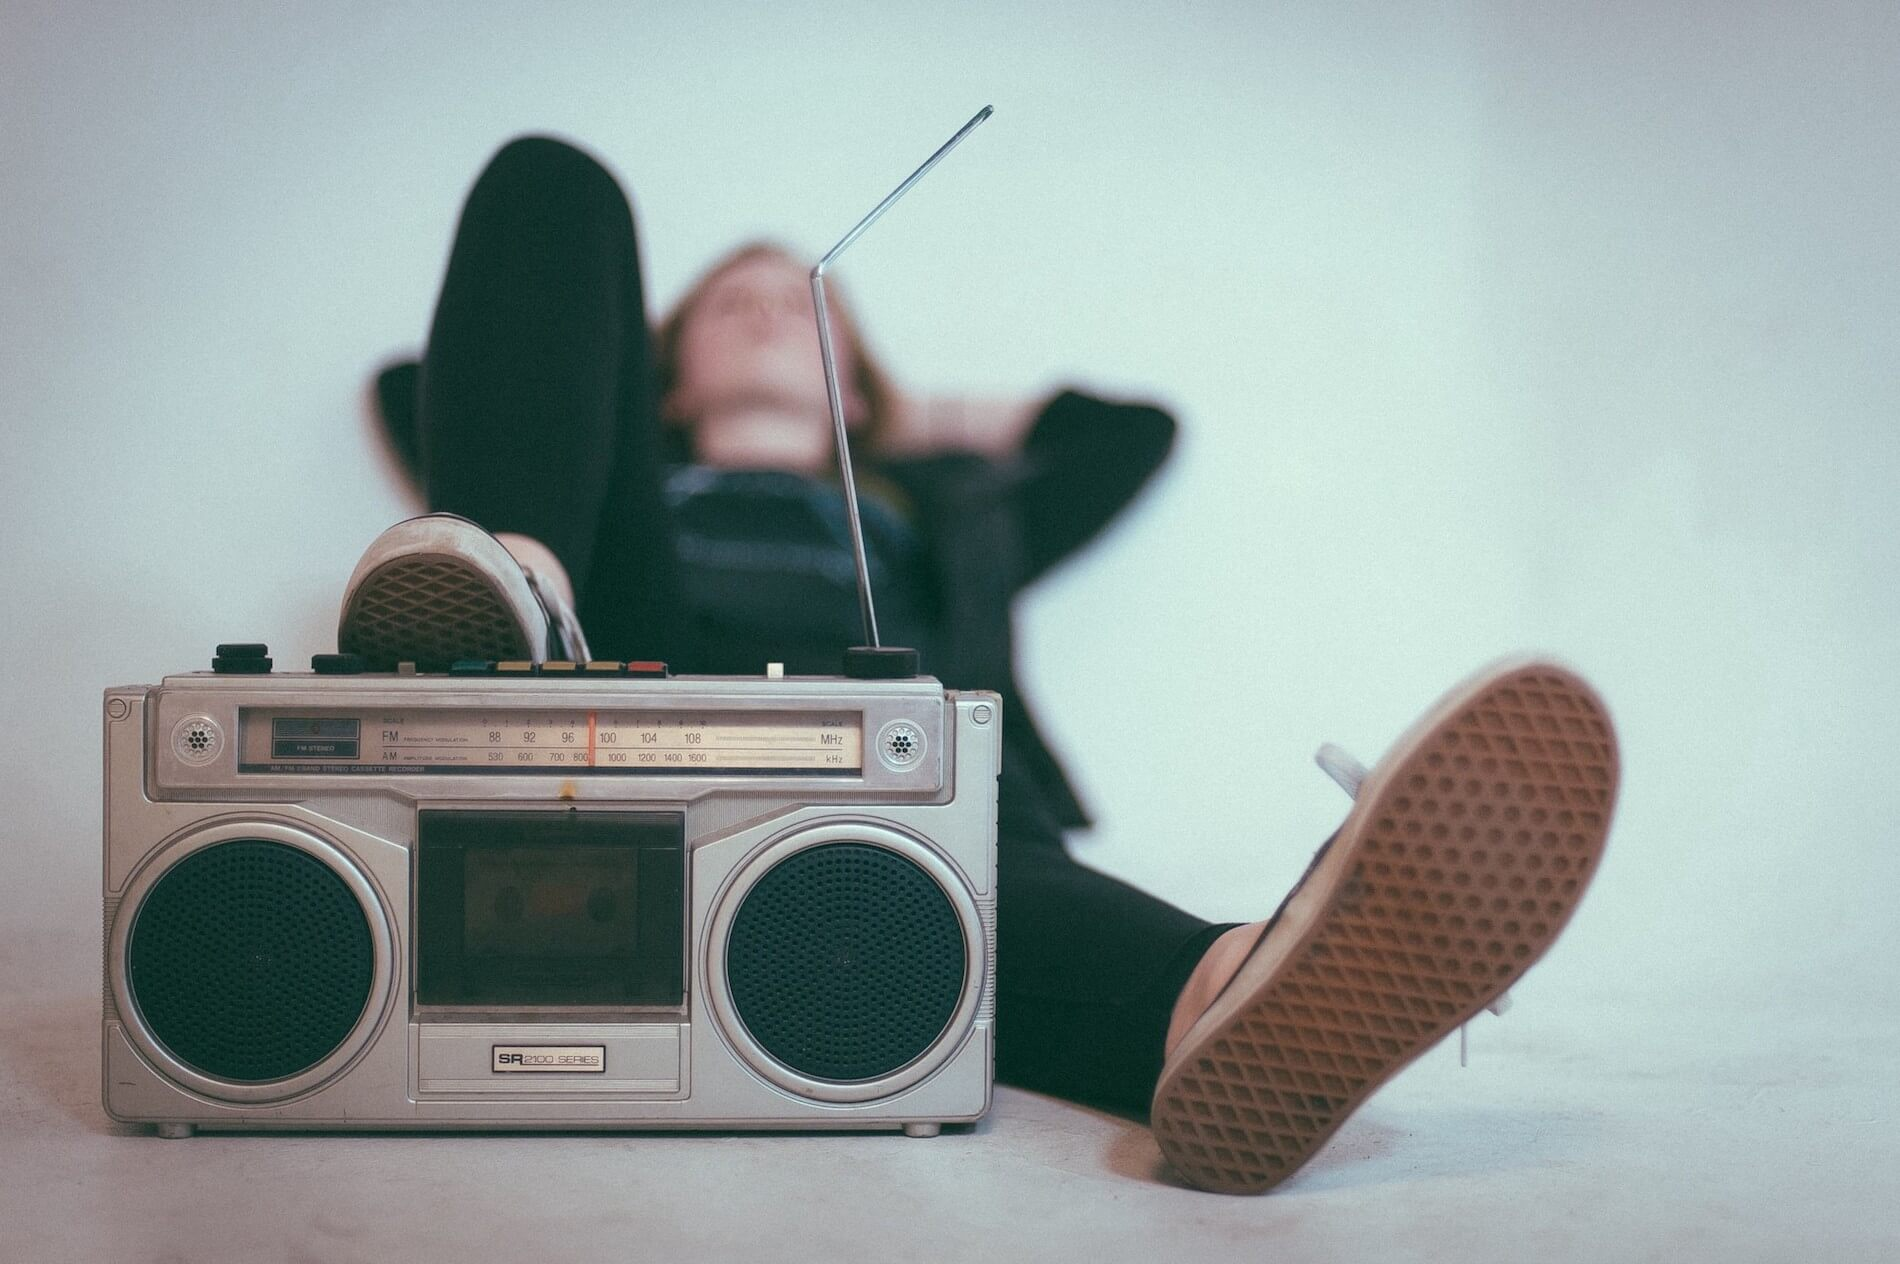 Out of focus person lying on their back with a sneaker on a boombox